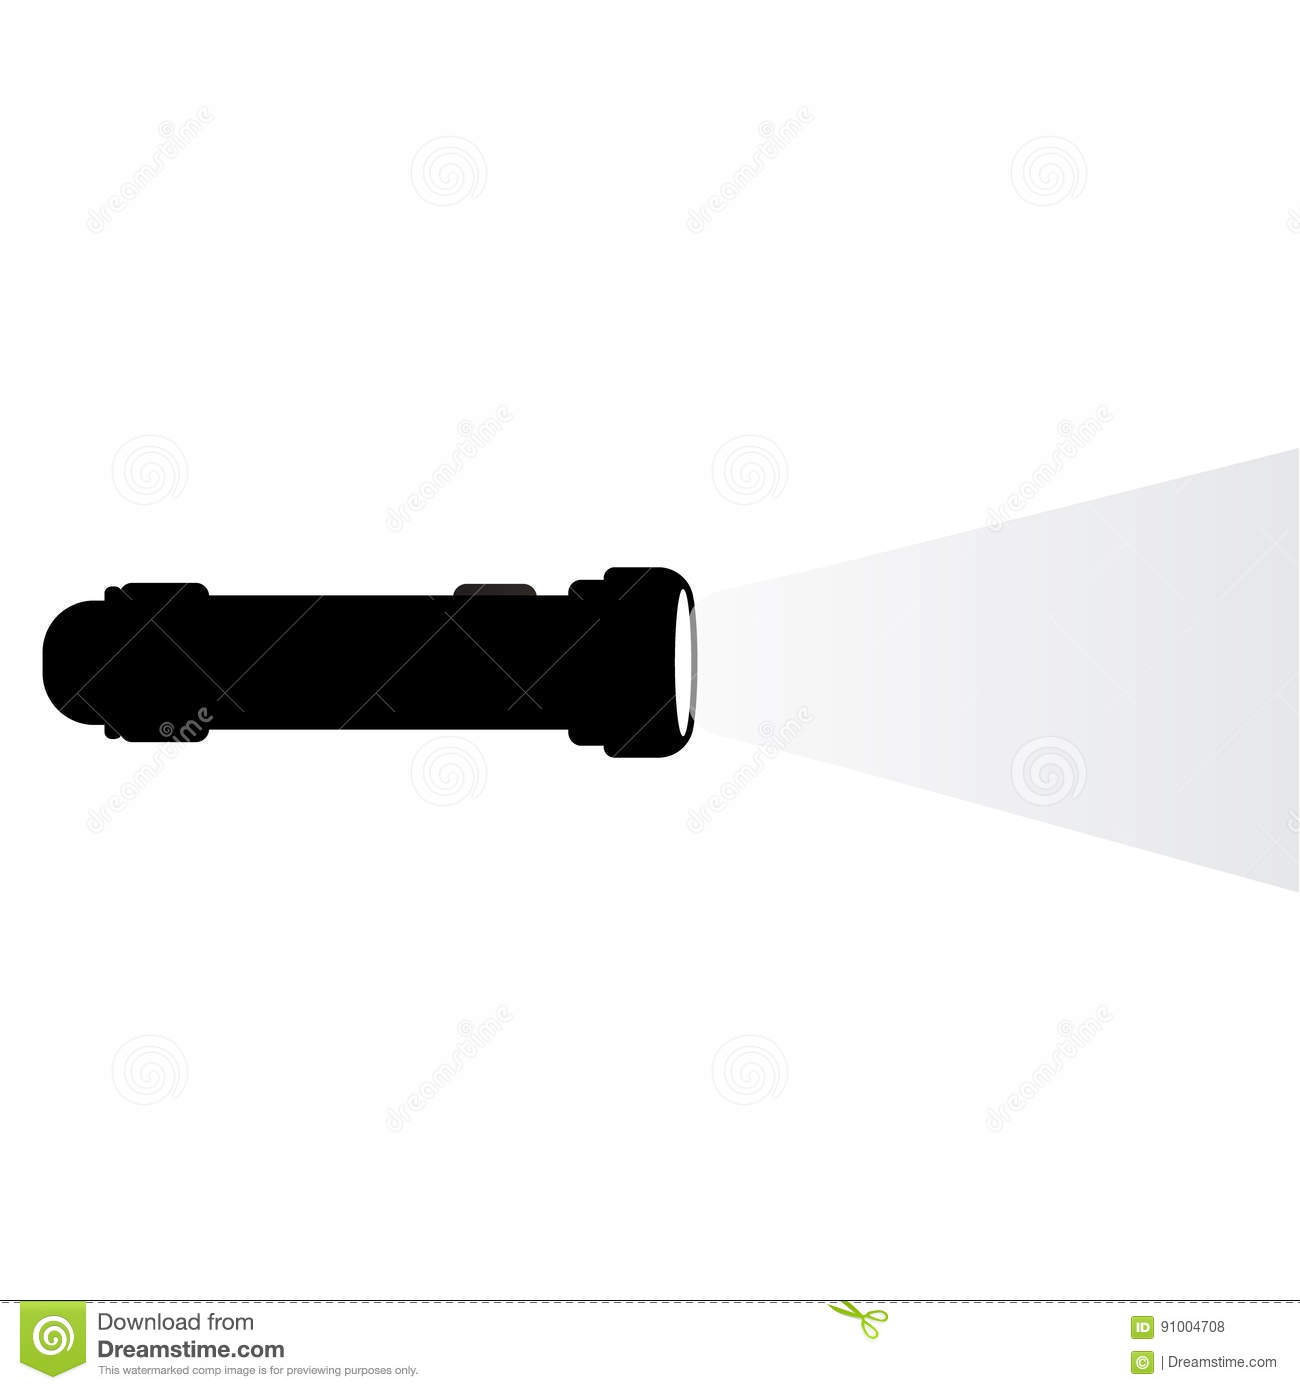 A Beam Of Light From A Flashlight Stock Vector - Image ...